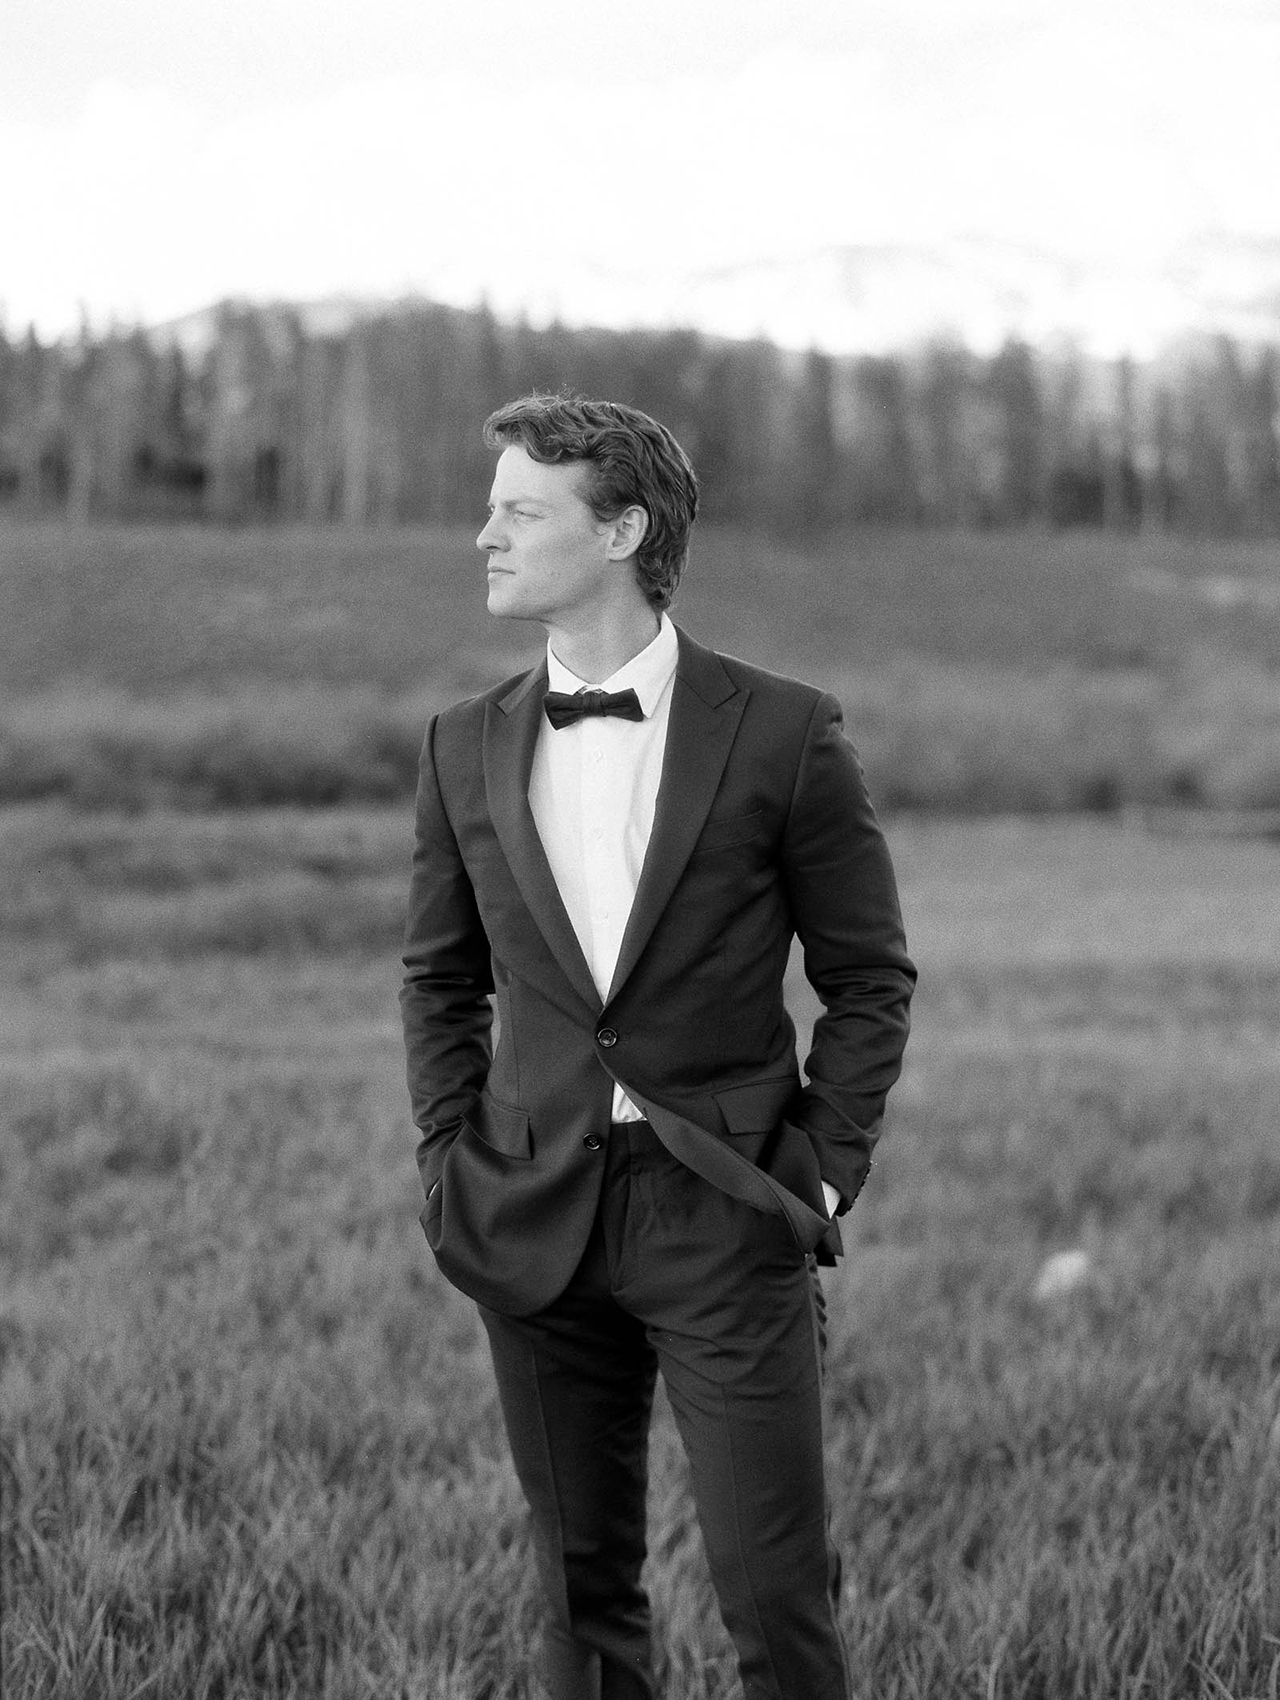 groom pose black tuxedo bowtie outdoors